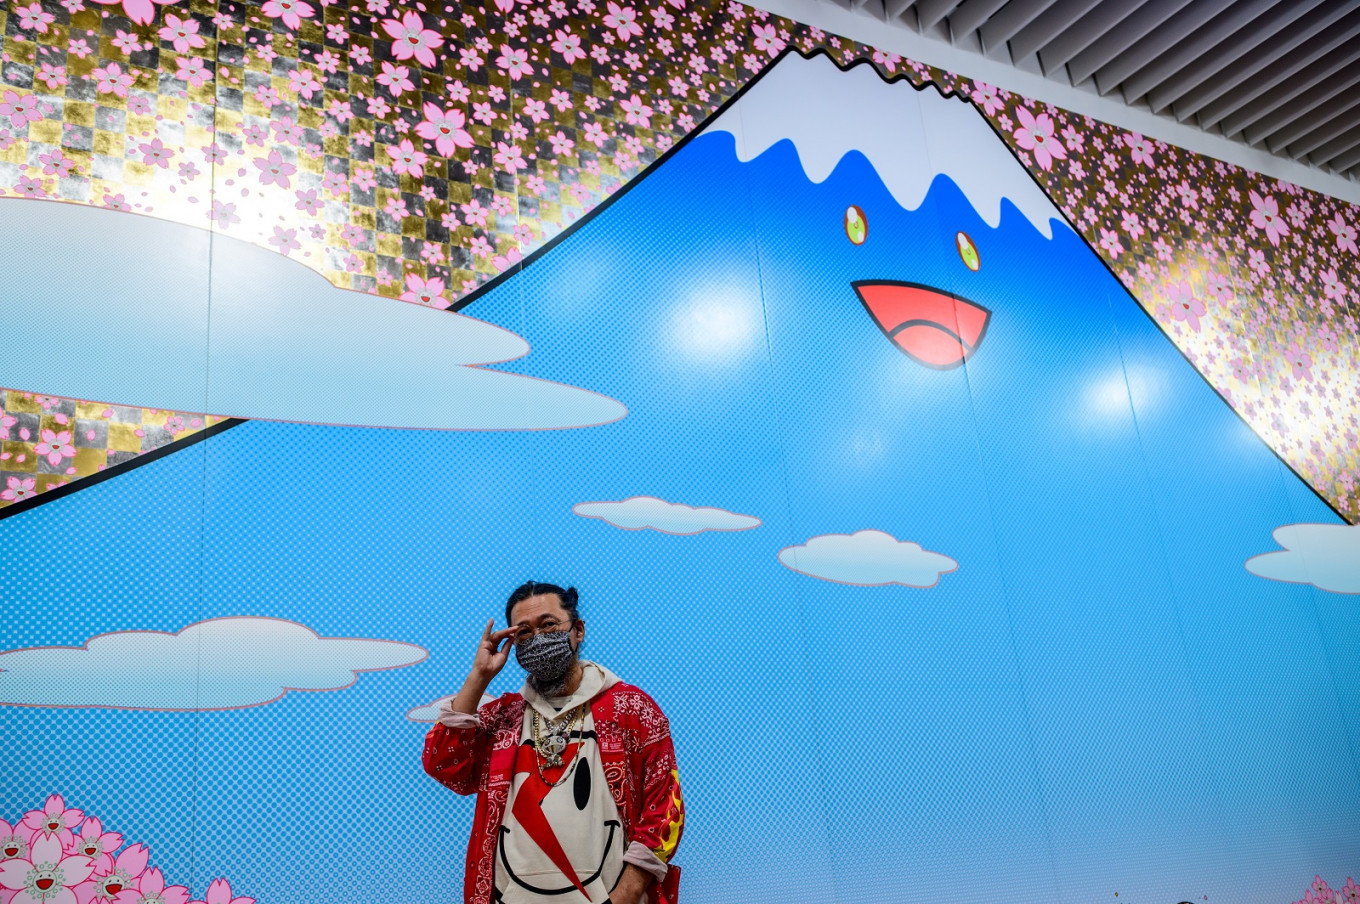 Japan's renowned artists find inspiration from pandemic